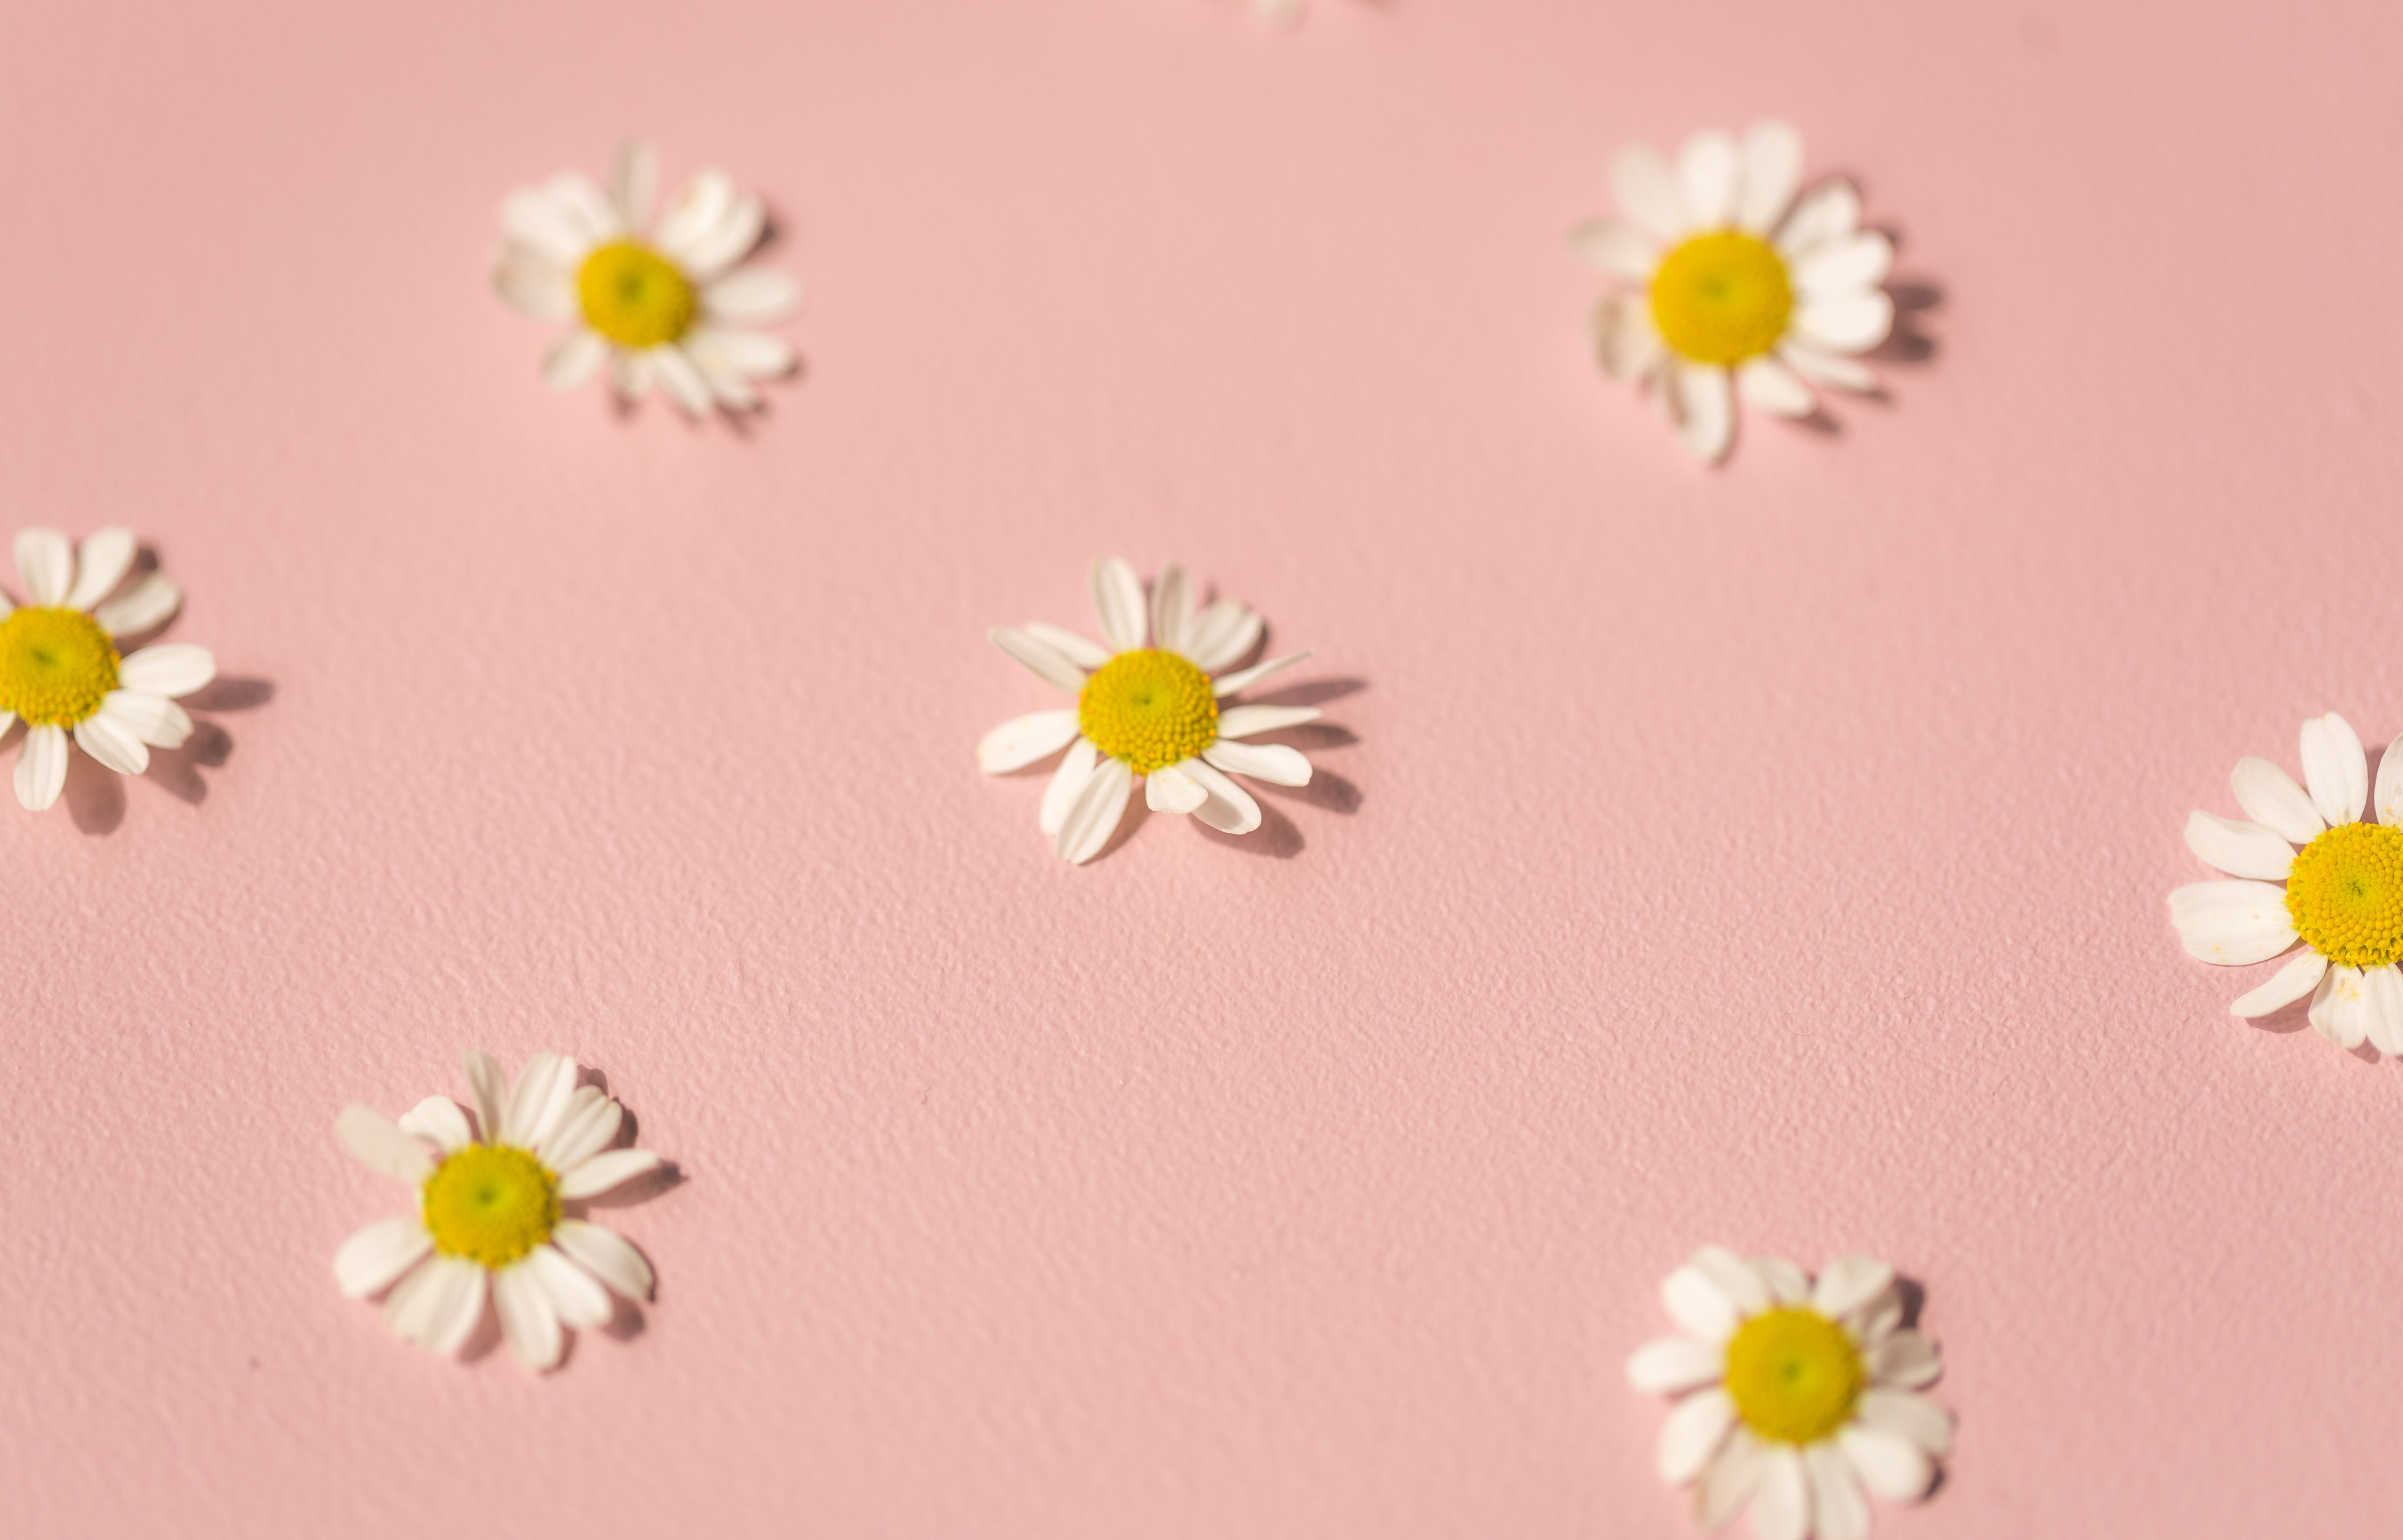 daisies-on-pink